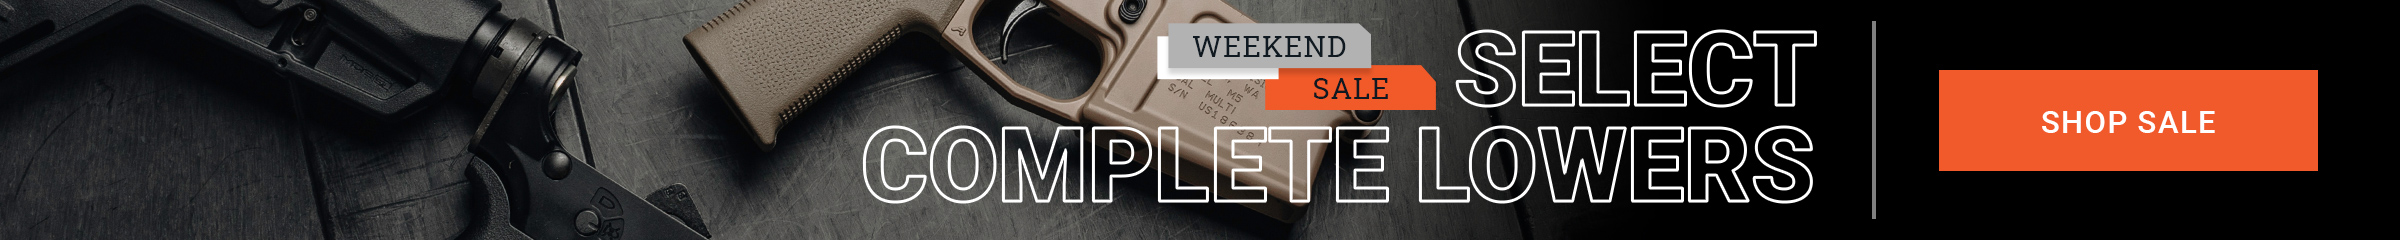 Save on Select Complete Lowers